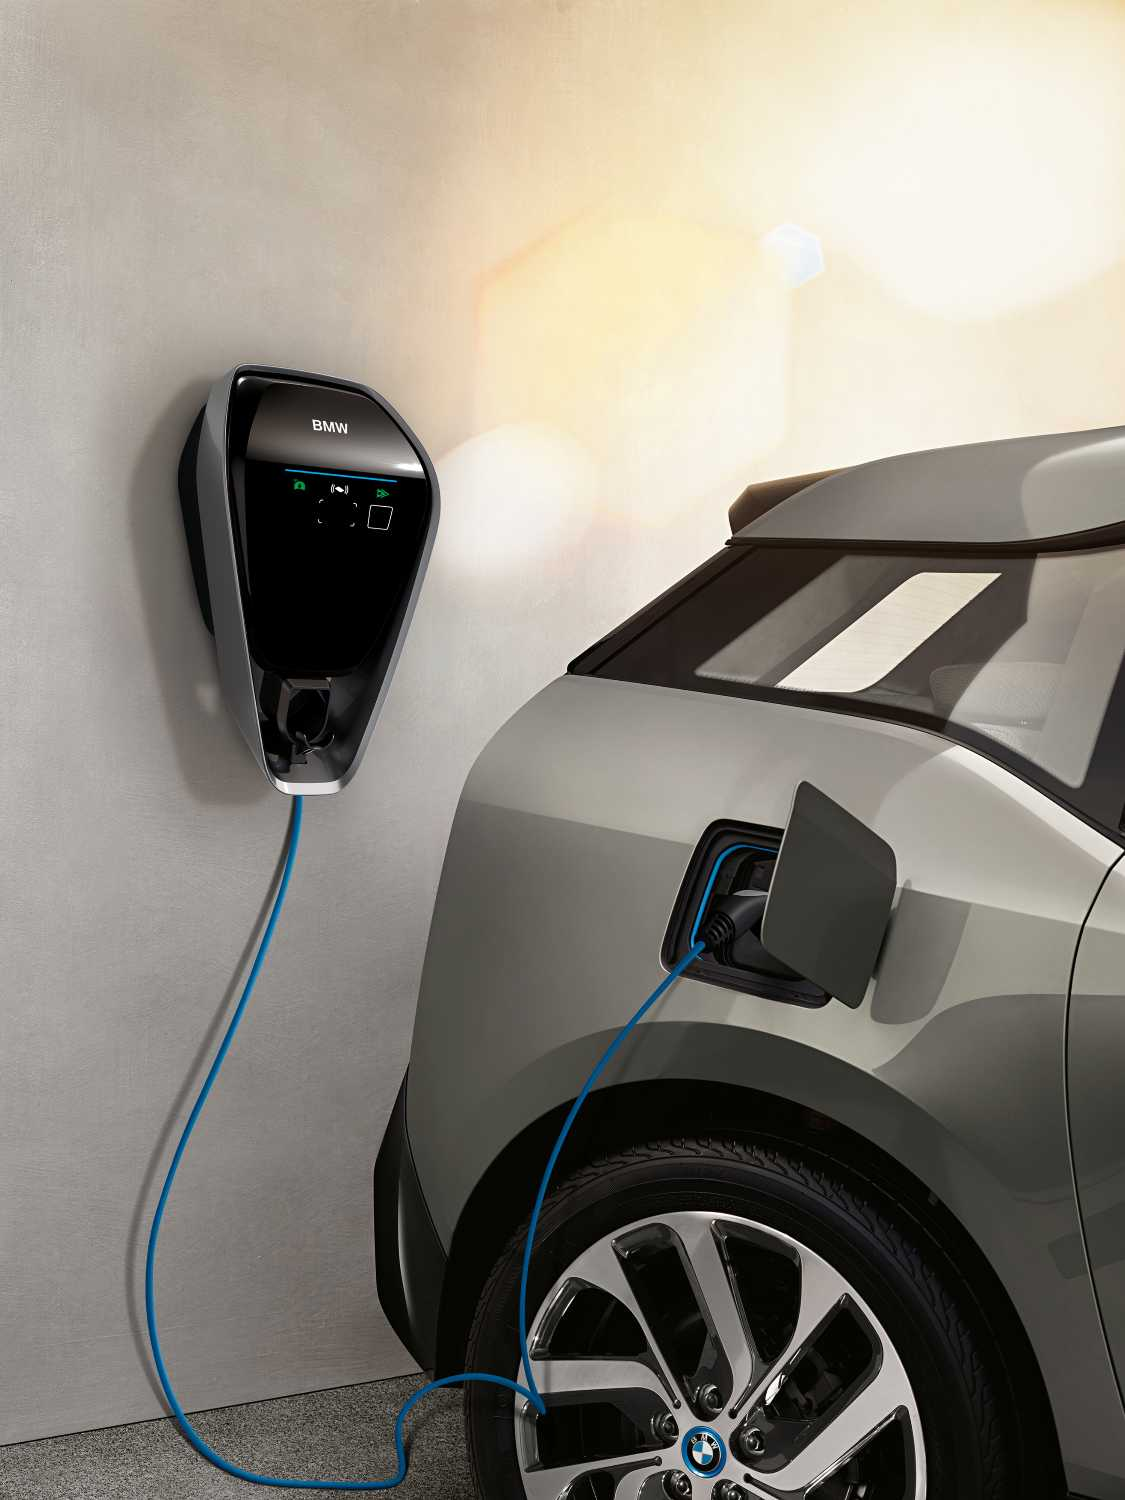 Bmw I Wallbox For Charging At Home Up To 22kw Charging Power Optional Intelligent Use Of Own Solar Electricity Local Electricity Traiff Options Smart Home Connection Rfid Access